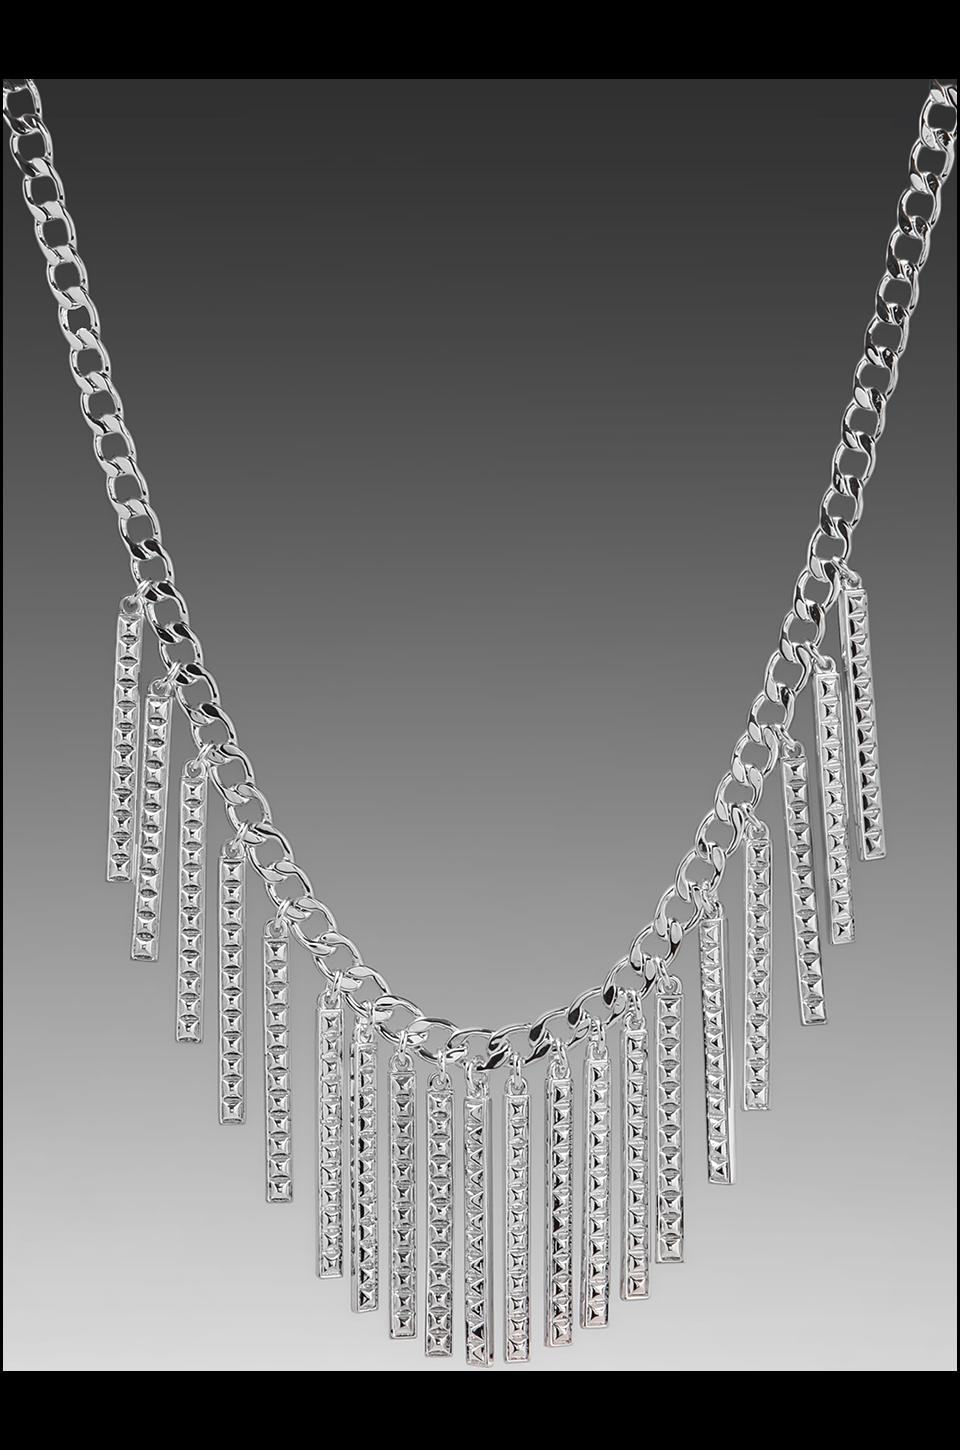 Rebecca Minkoff Id Collection Necklace in Silverstone